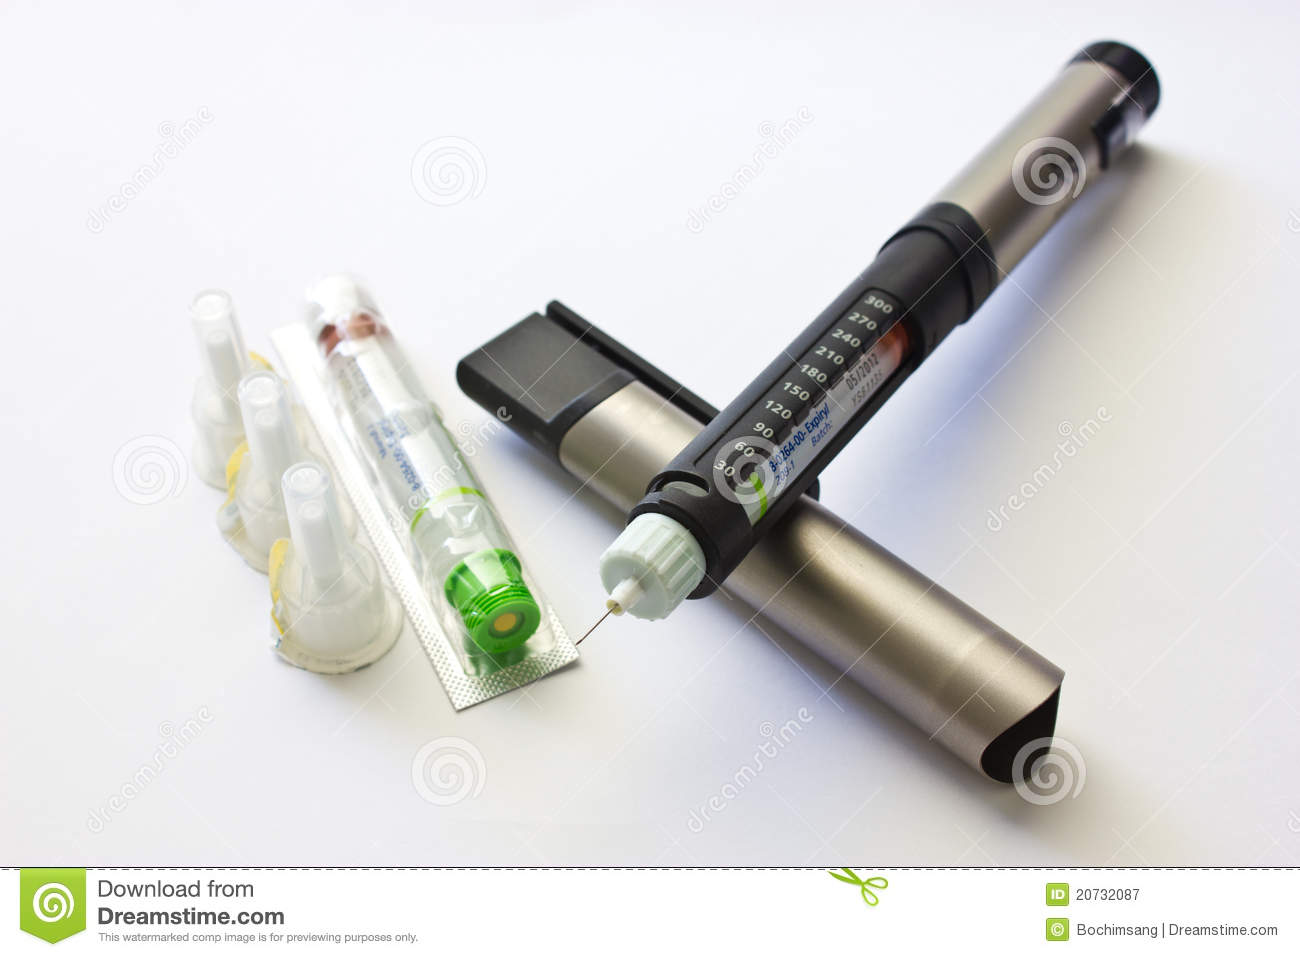 Insulin penfill stock image. Image of penfill, pharmacy